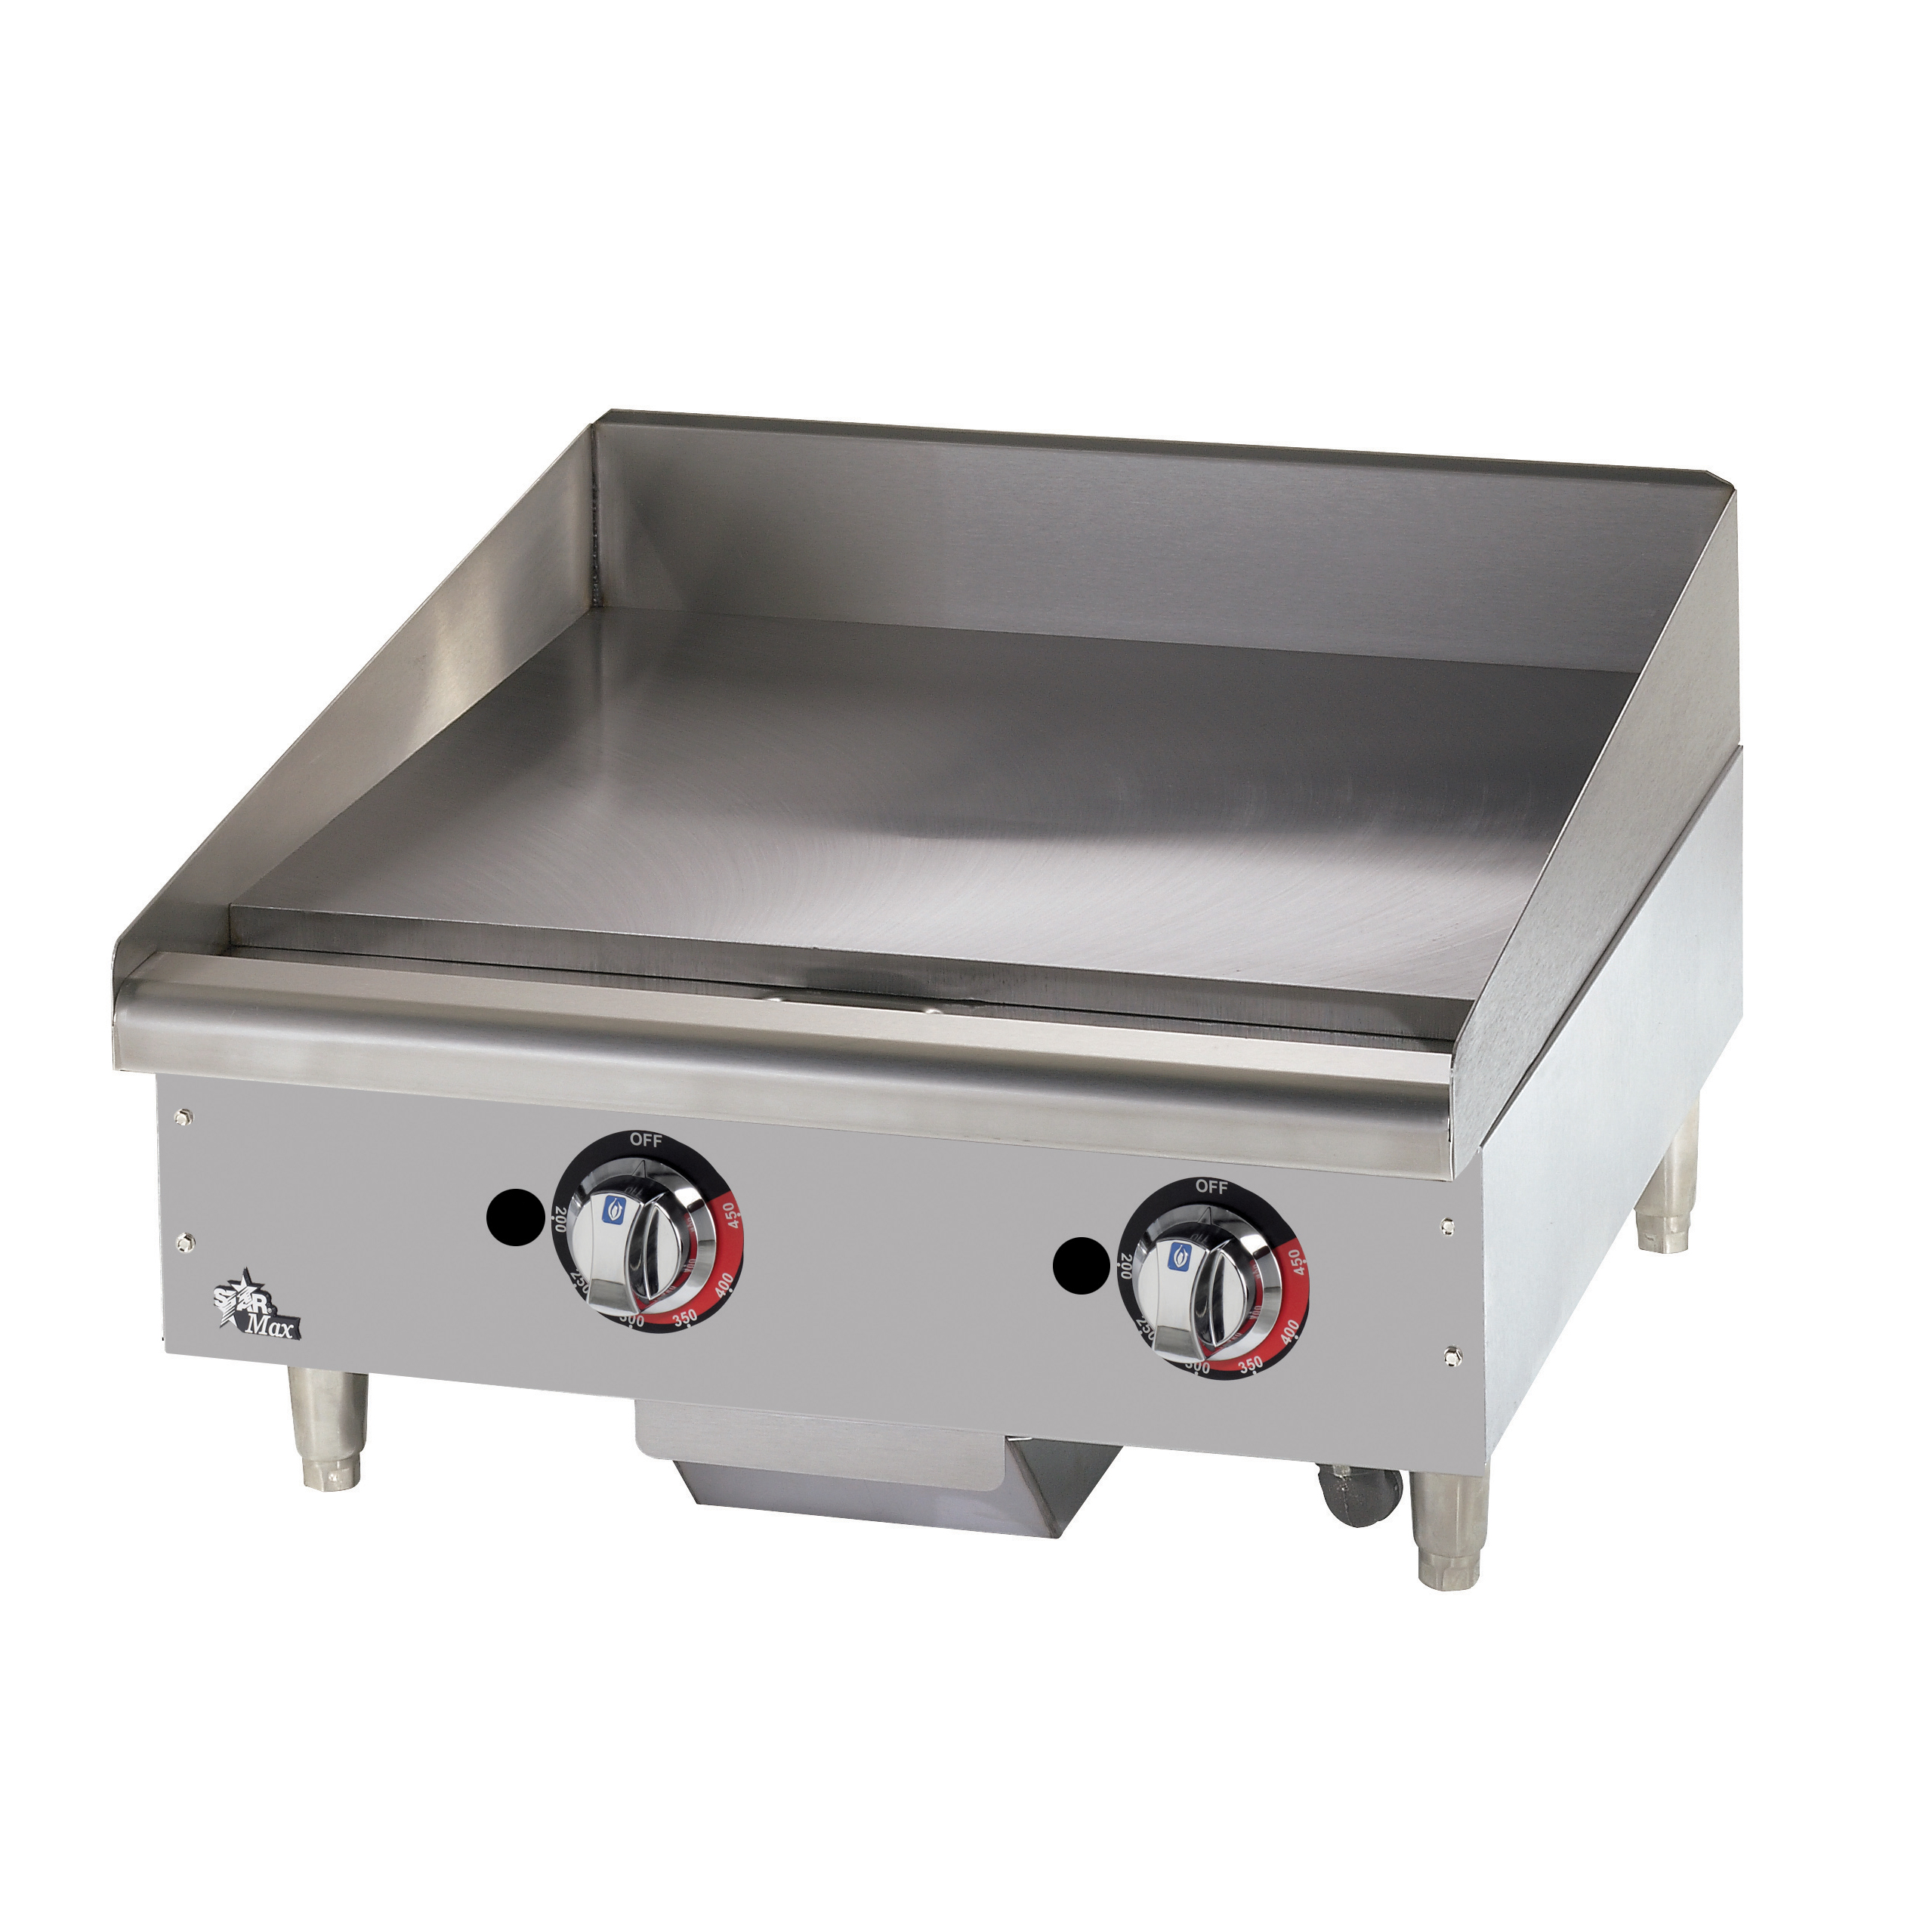 Star 624TSPF griddle, gas, countertop